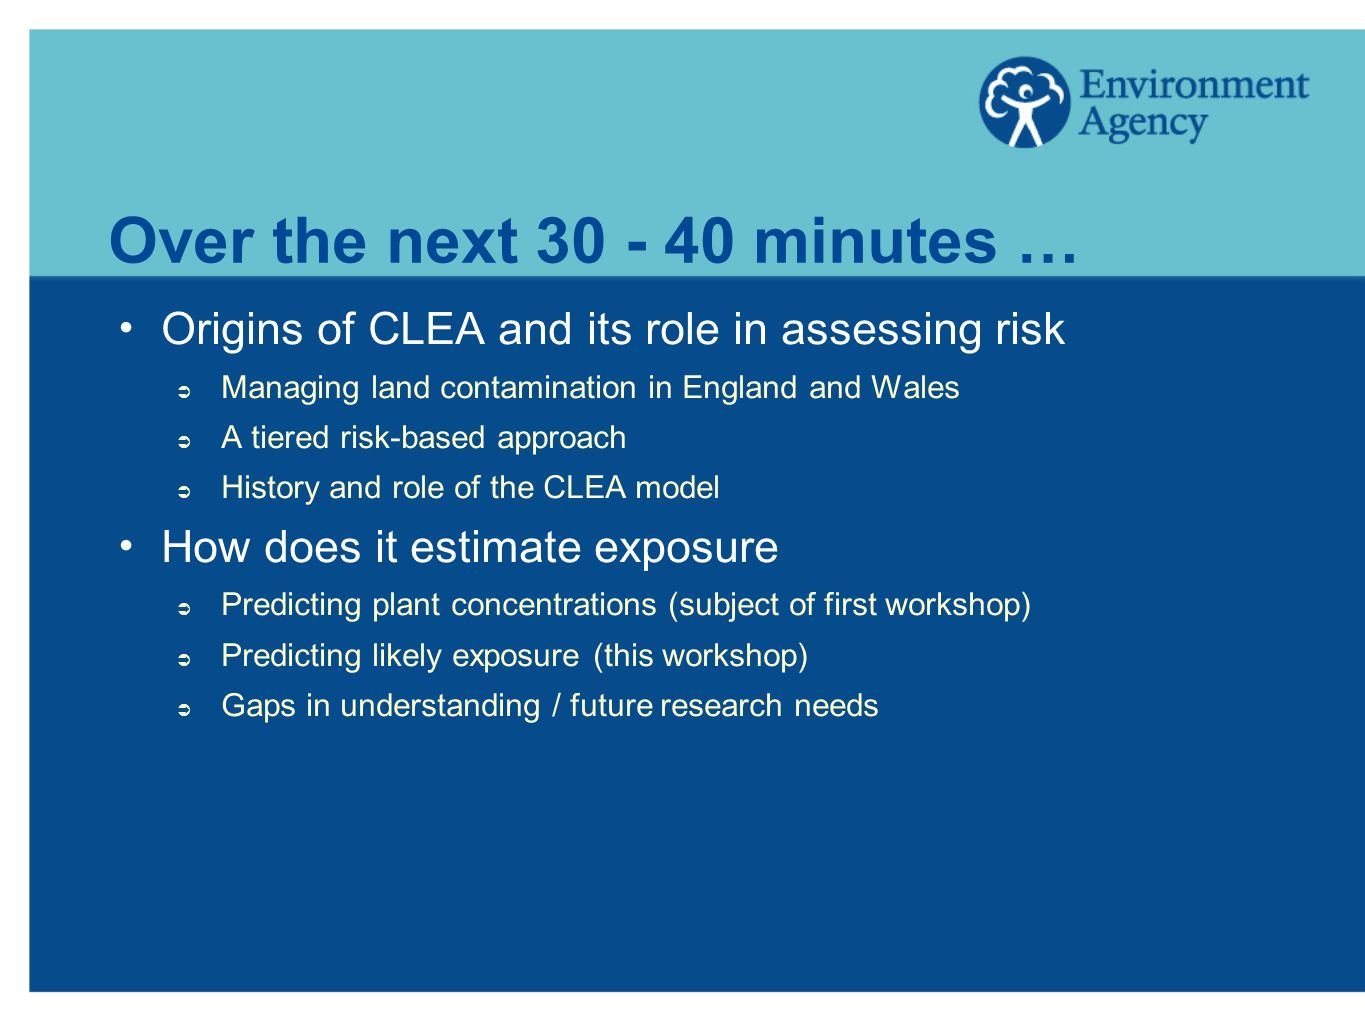 Over the next 30 - 40 minutes … Origins of CLEA and its role in assessing risk Managing land contamination in England and Wales A tiered risk-based ap